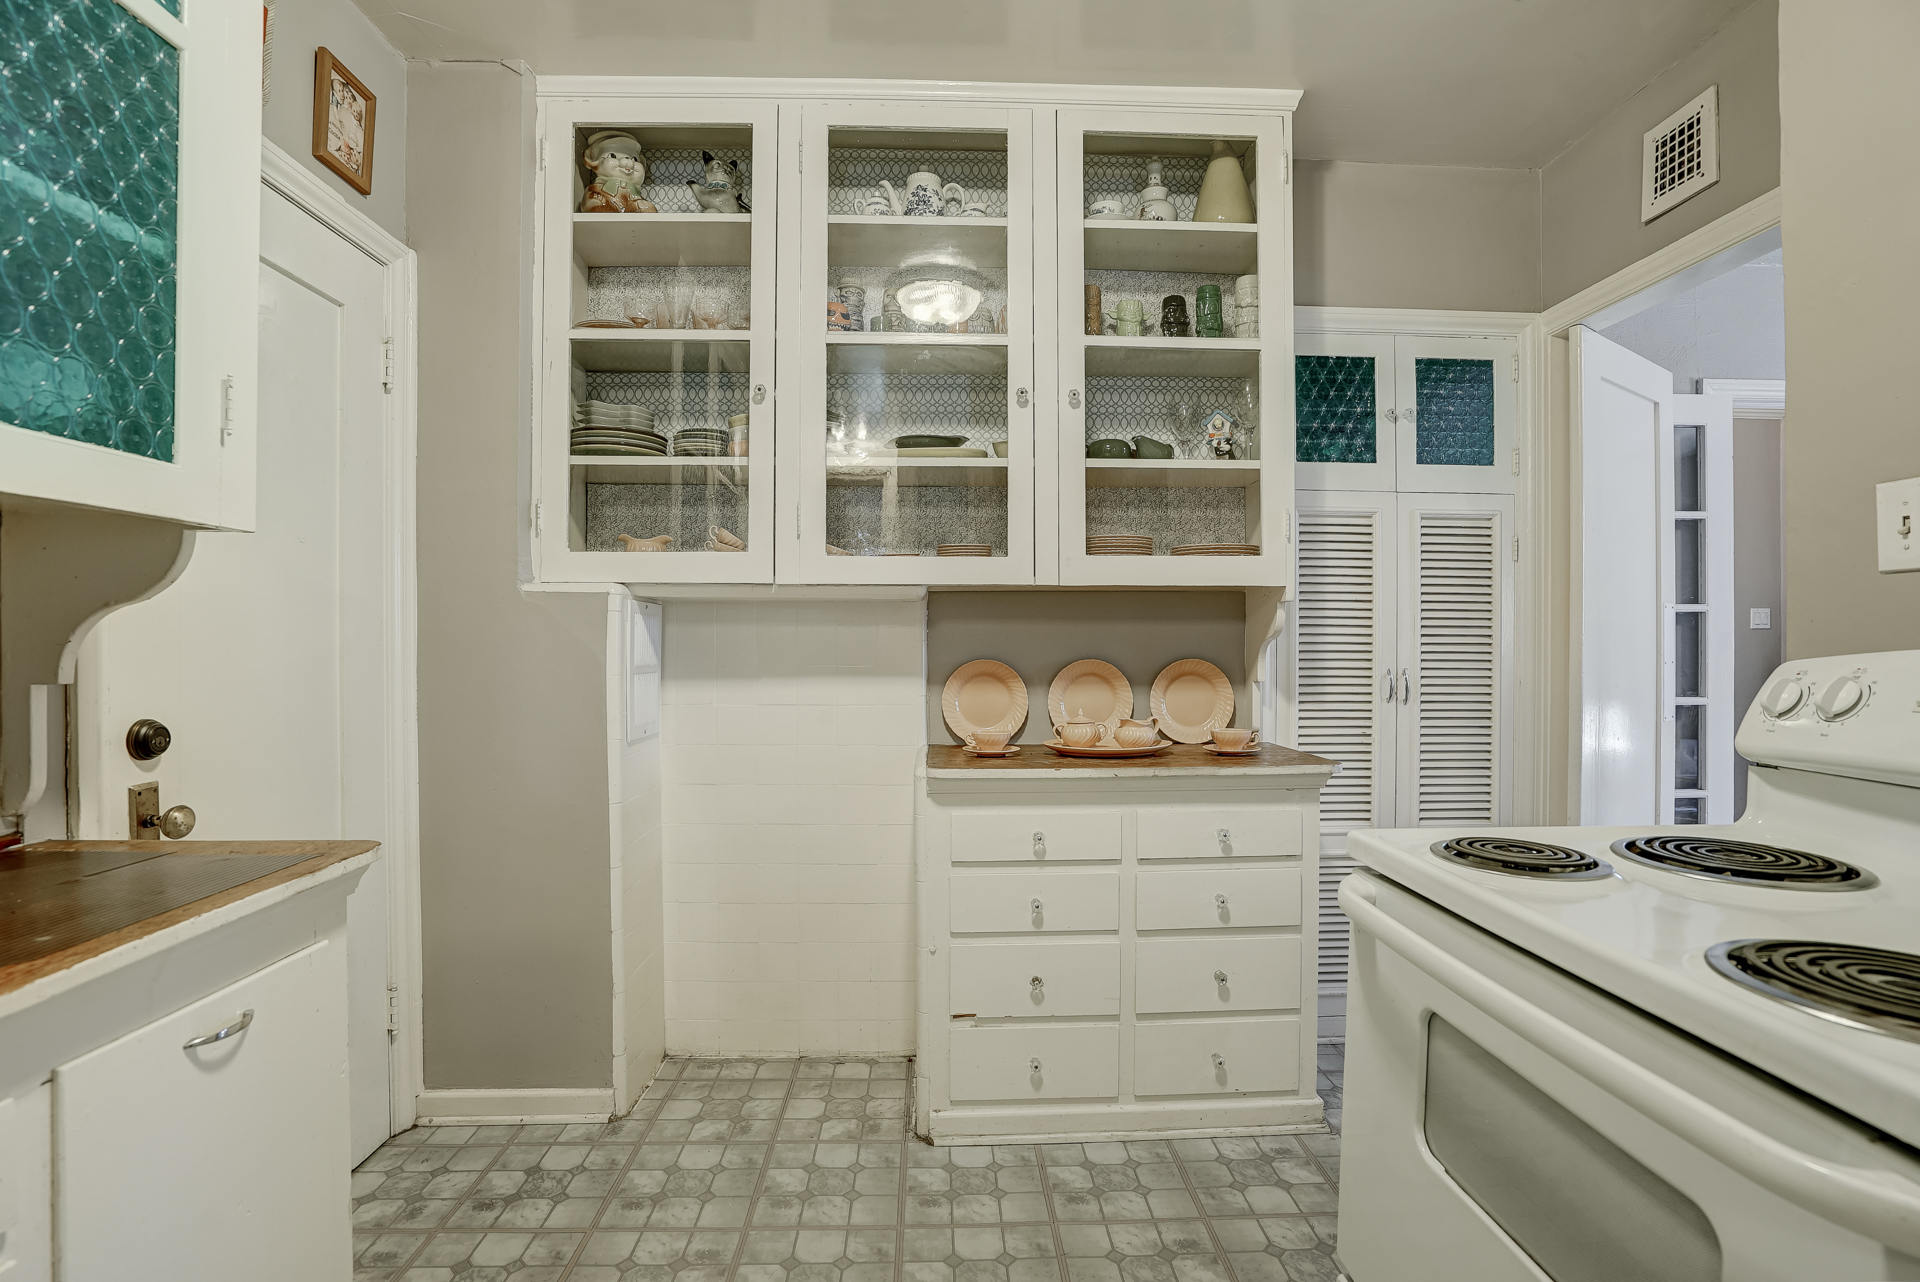 Alternate view of vintage kitchen with plenty of cabinetry. Doorway to left connects both units.